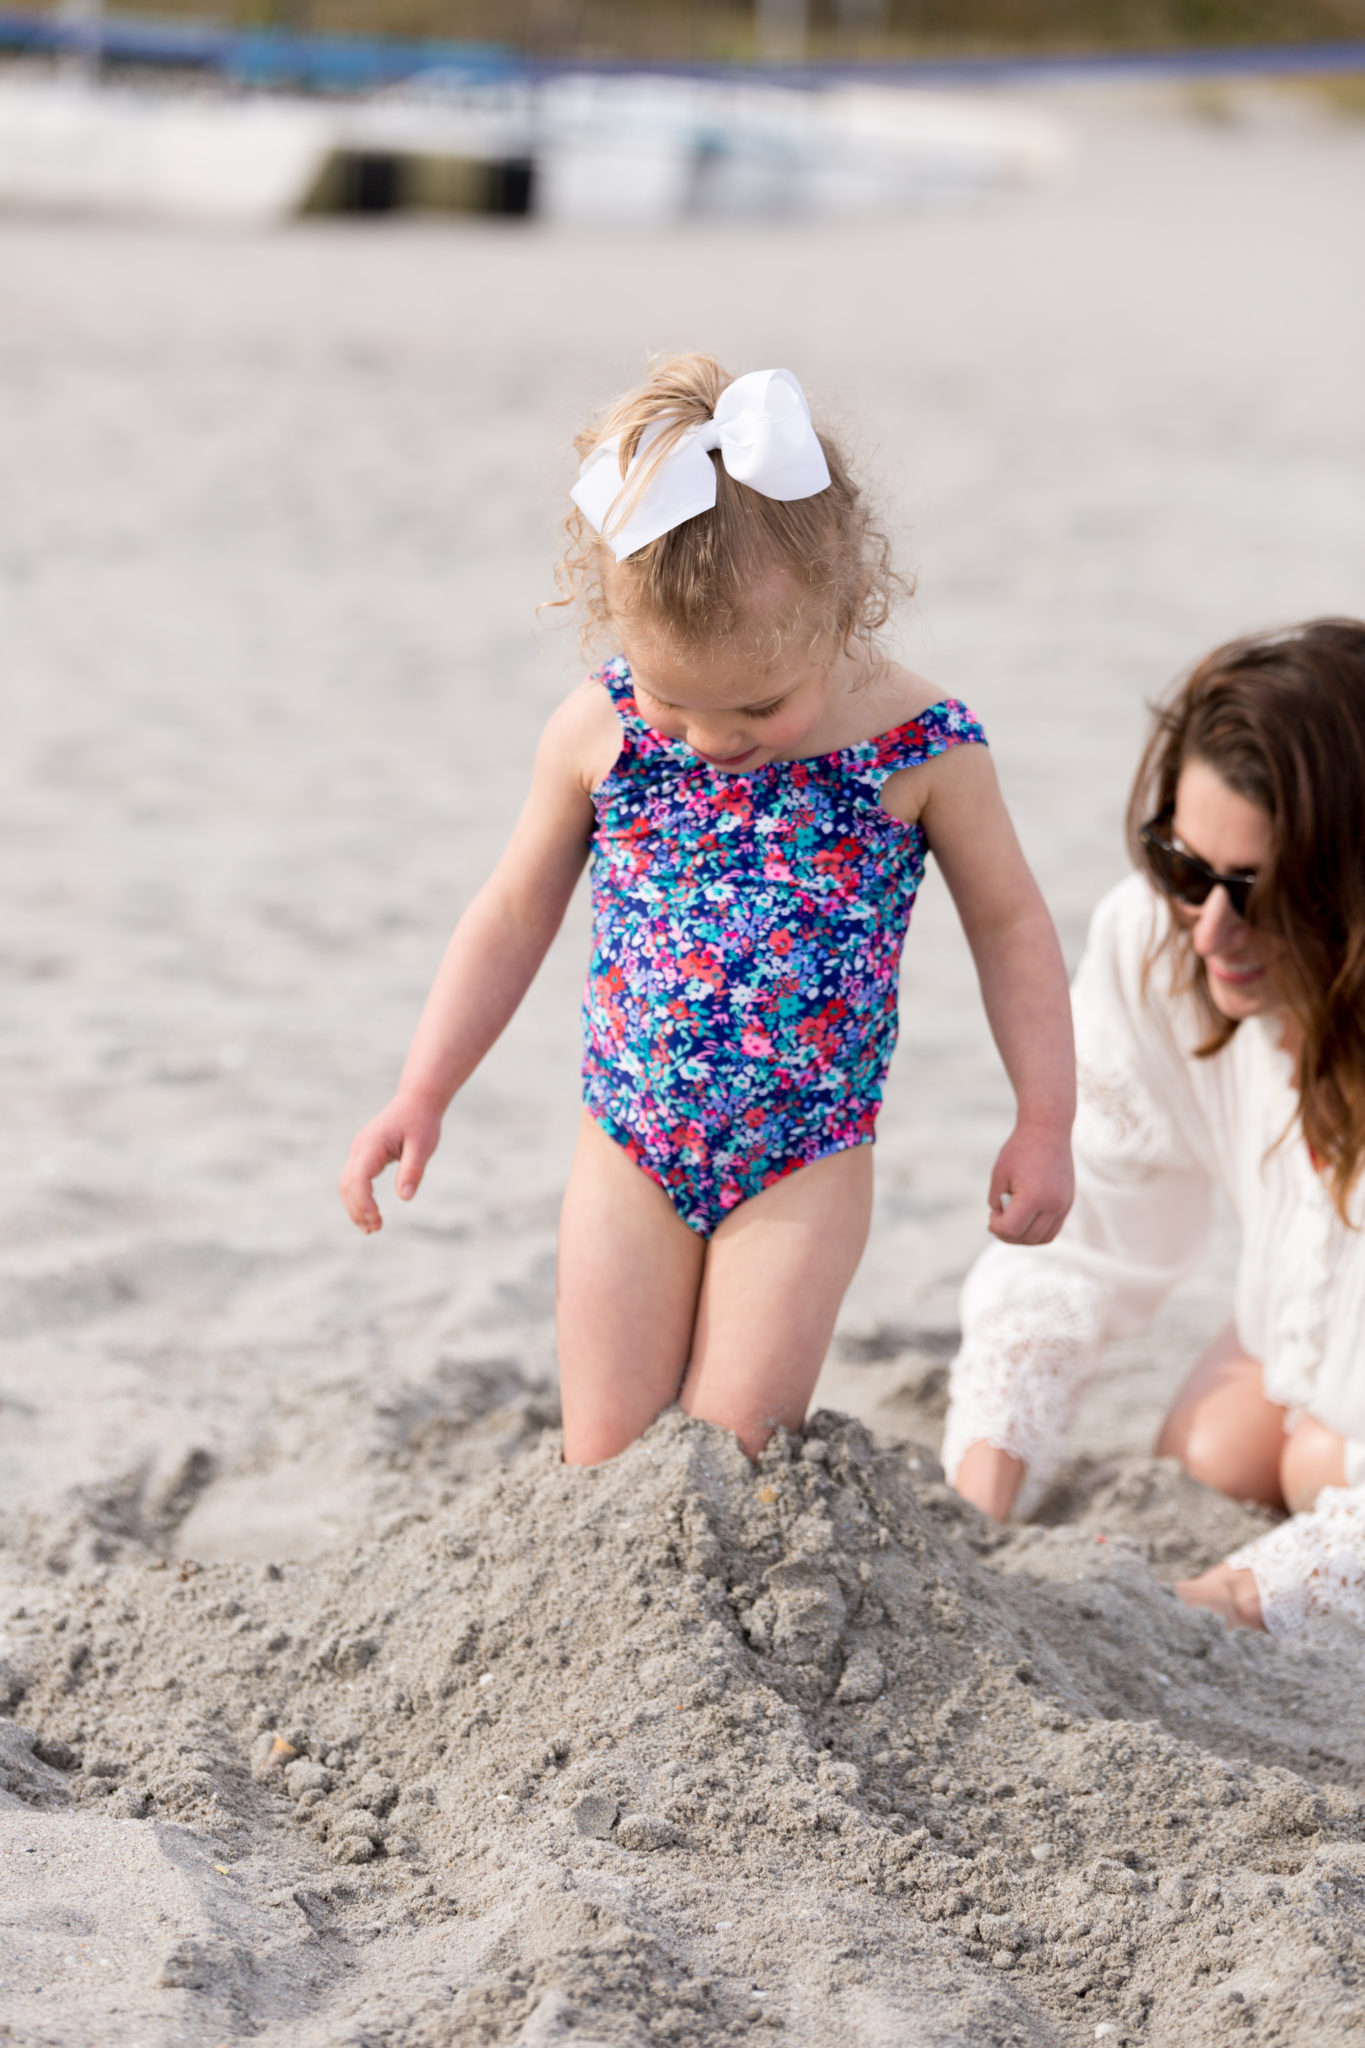 what to do and where to stay in delray beach florida | summer toddler style | summer style | beach style | west palm beach flordia | seagate hotel delray beach florida | family vacation with a toddler